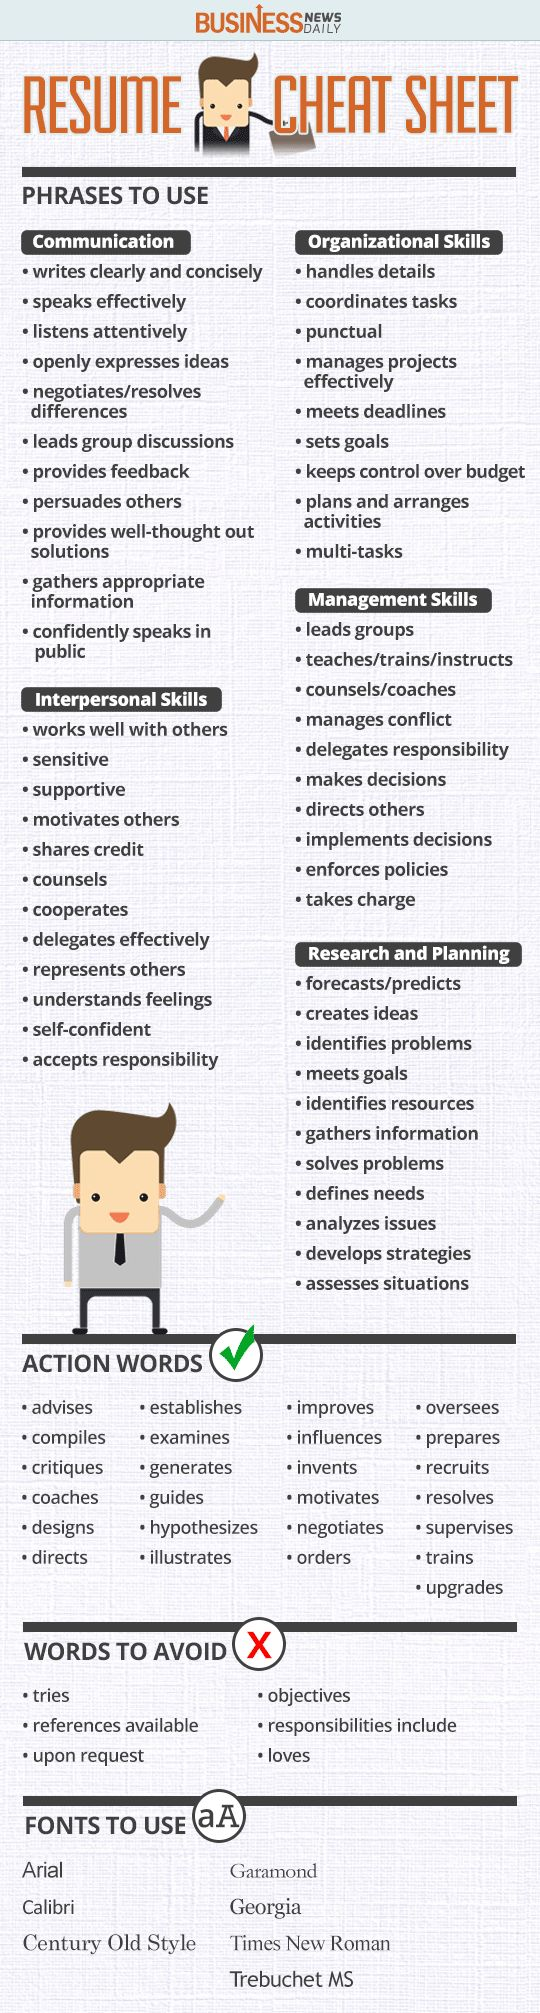 Opposenewapstandardsus  Personable  Ideas About Resume On Pinterest  Cv Format Resume Cv And  With Hot Resume Cheat Sheet Infographic Andrews Almost Done With A Complete Unit On Employment Which With Attractive Margins For Resume Also Free Printable Resume Template In Addition Examples Of A Good Resume And Fill In The Blank Resume As Well As Resume Dos And Don Ts Additionally Cover Letter Example For Resume From Pinterestcom With Opposenewapstandardsus  Hot  Ideas About Resume On Pinterest  Cv Format Resume Cv And  With Attractive Resume Cheat Sheet Infographic Andrews Almost Done With A Complete Unit On Employment Which And Personable Margins For Resume Also Free Printable Resume Template In Addition Examples Of A Good Resume From Pinterestcom